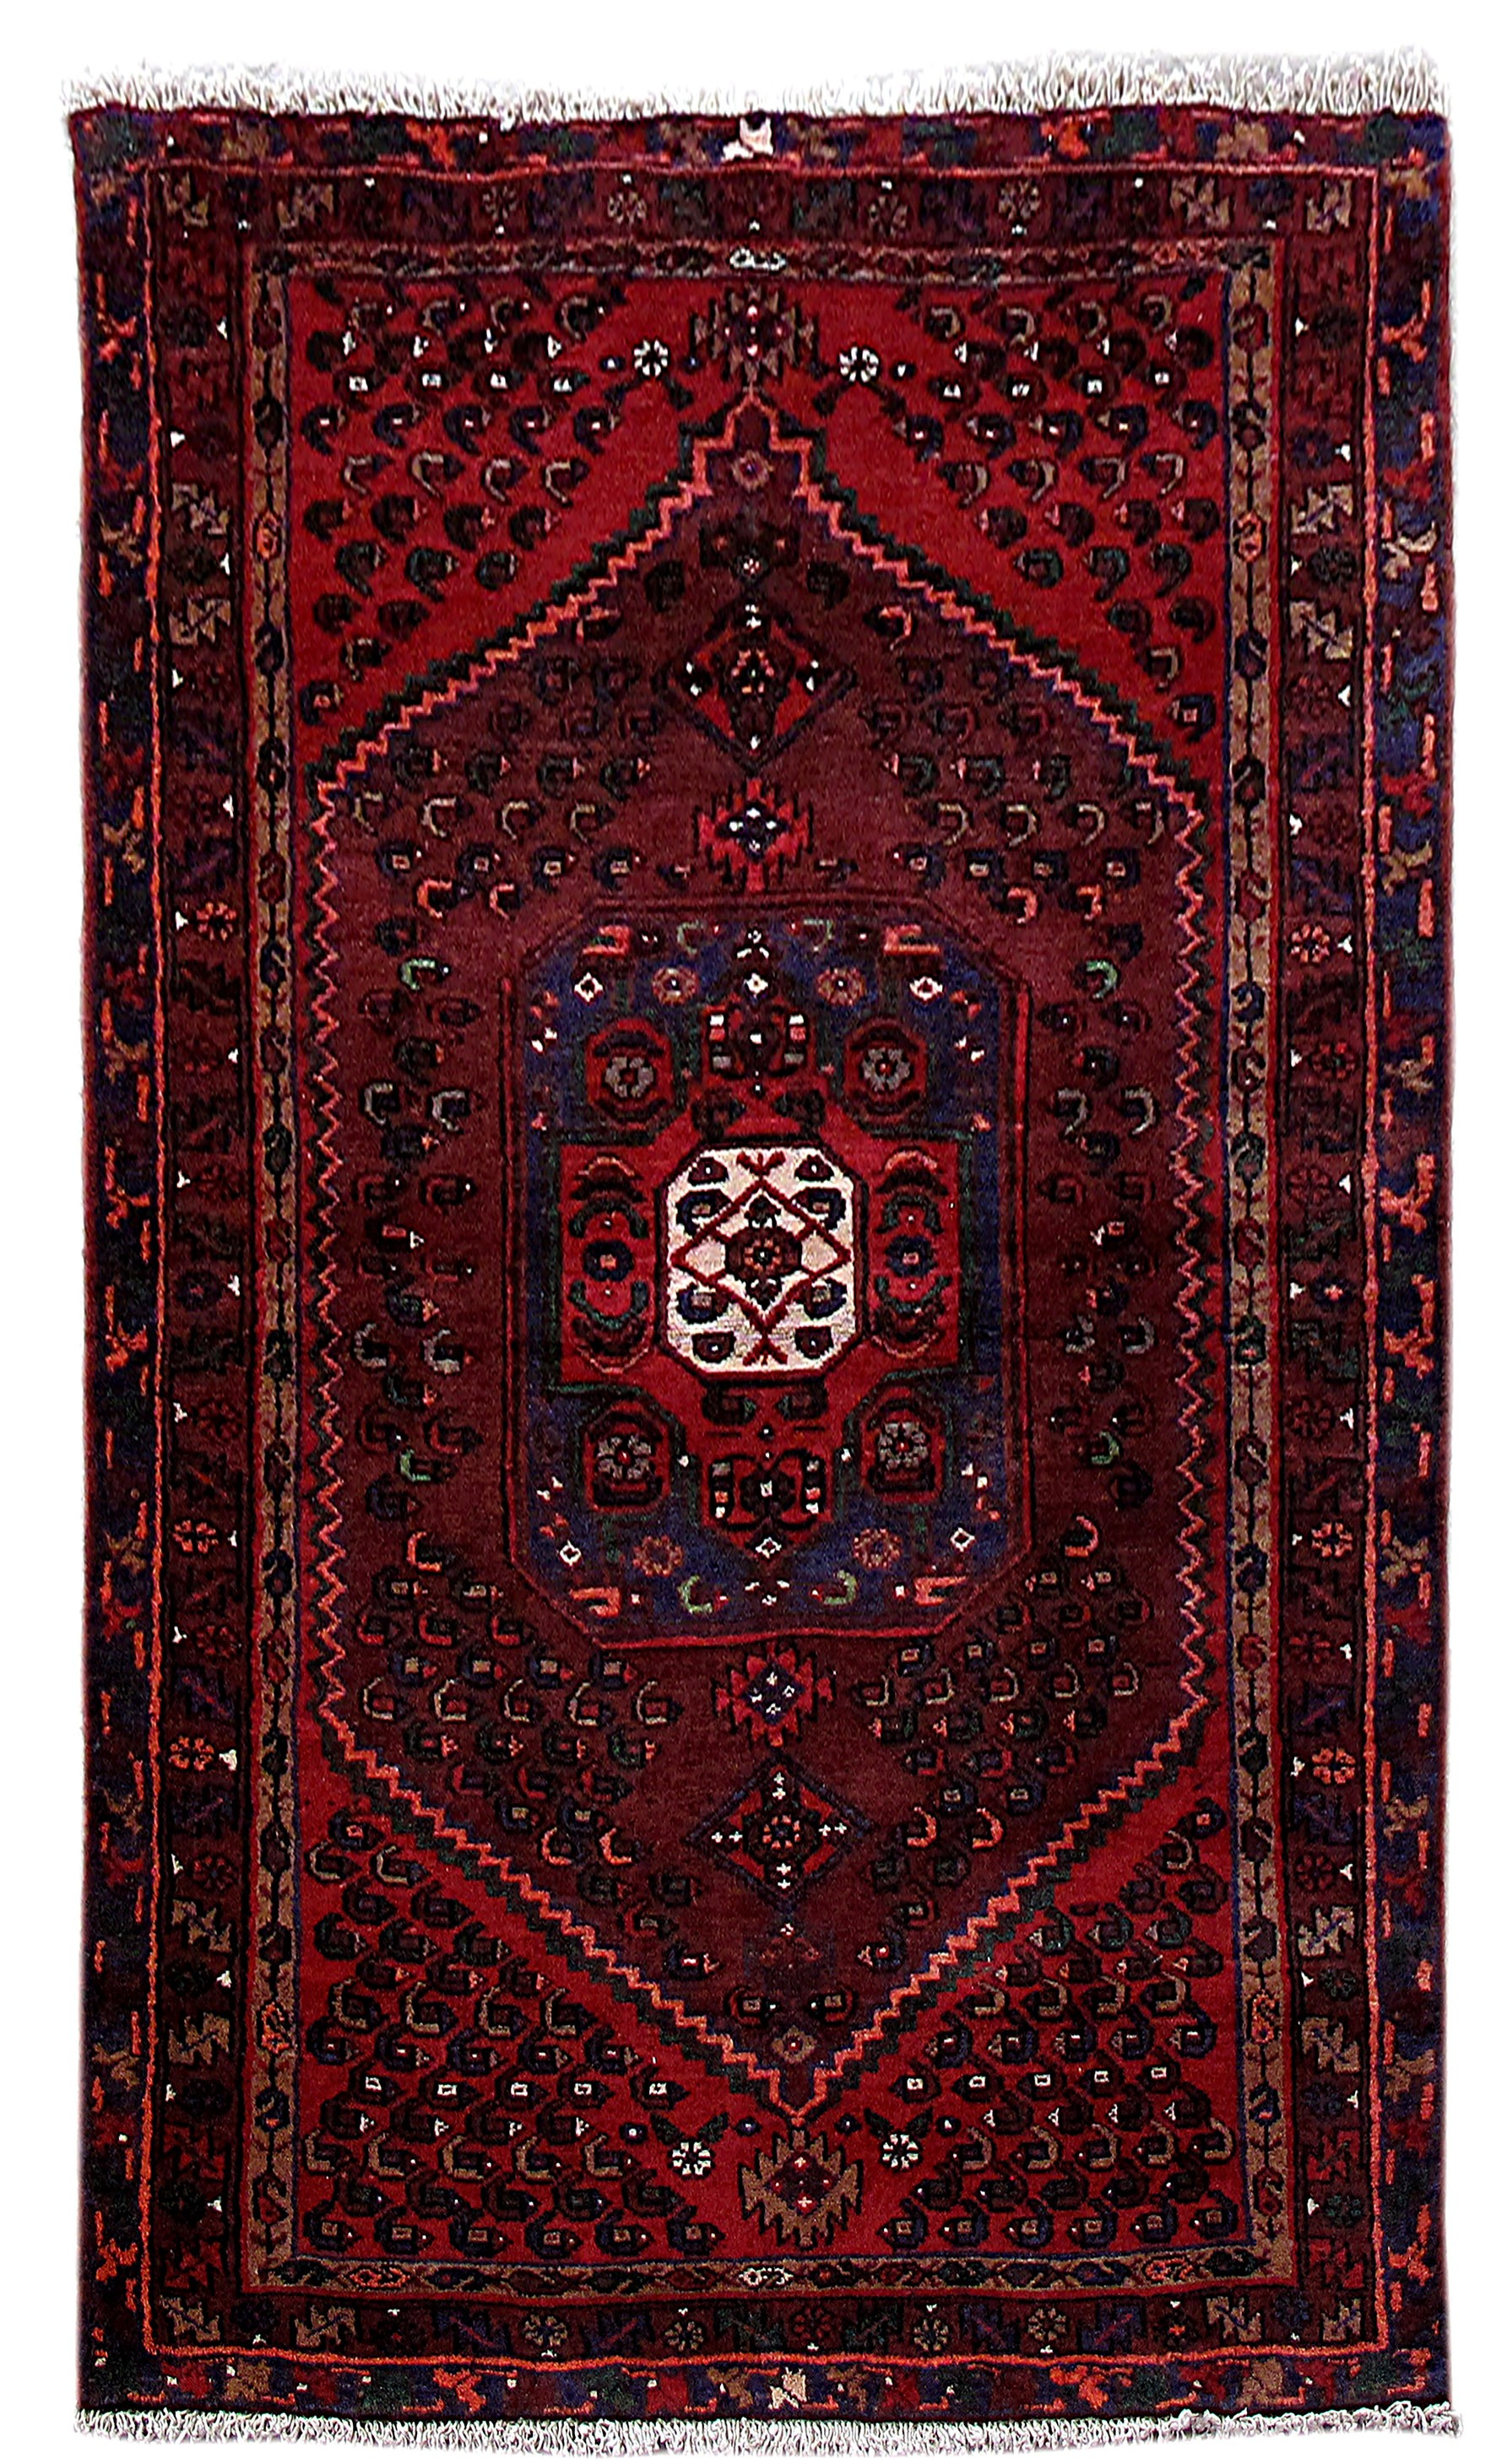 Up to 80% off area rug sale today. Every brand, every style and every color of rug at the lowest prices.